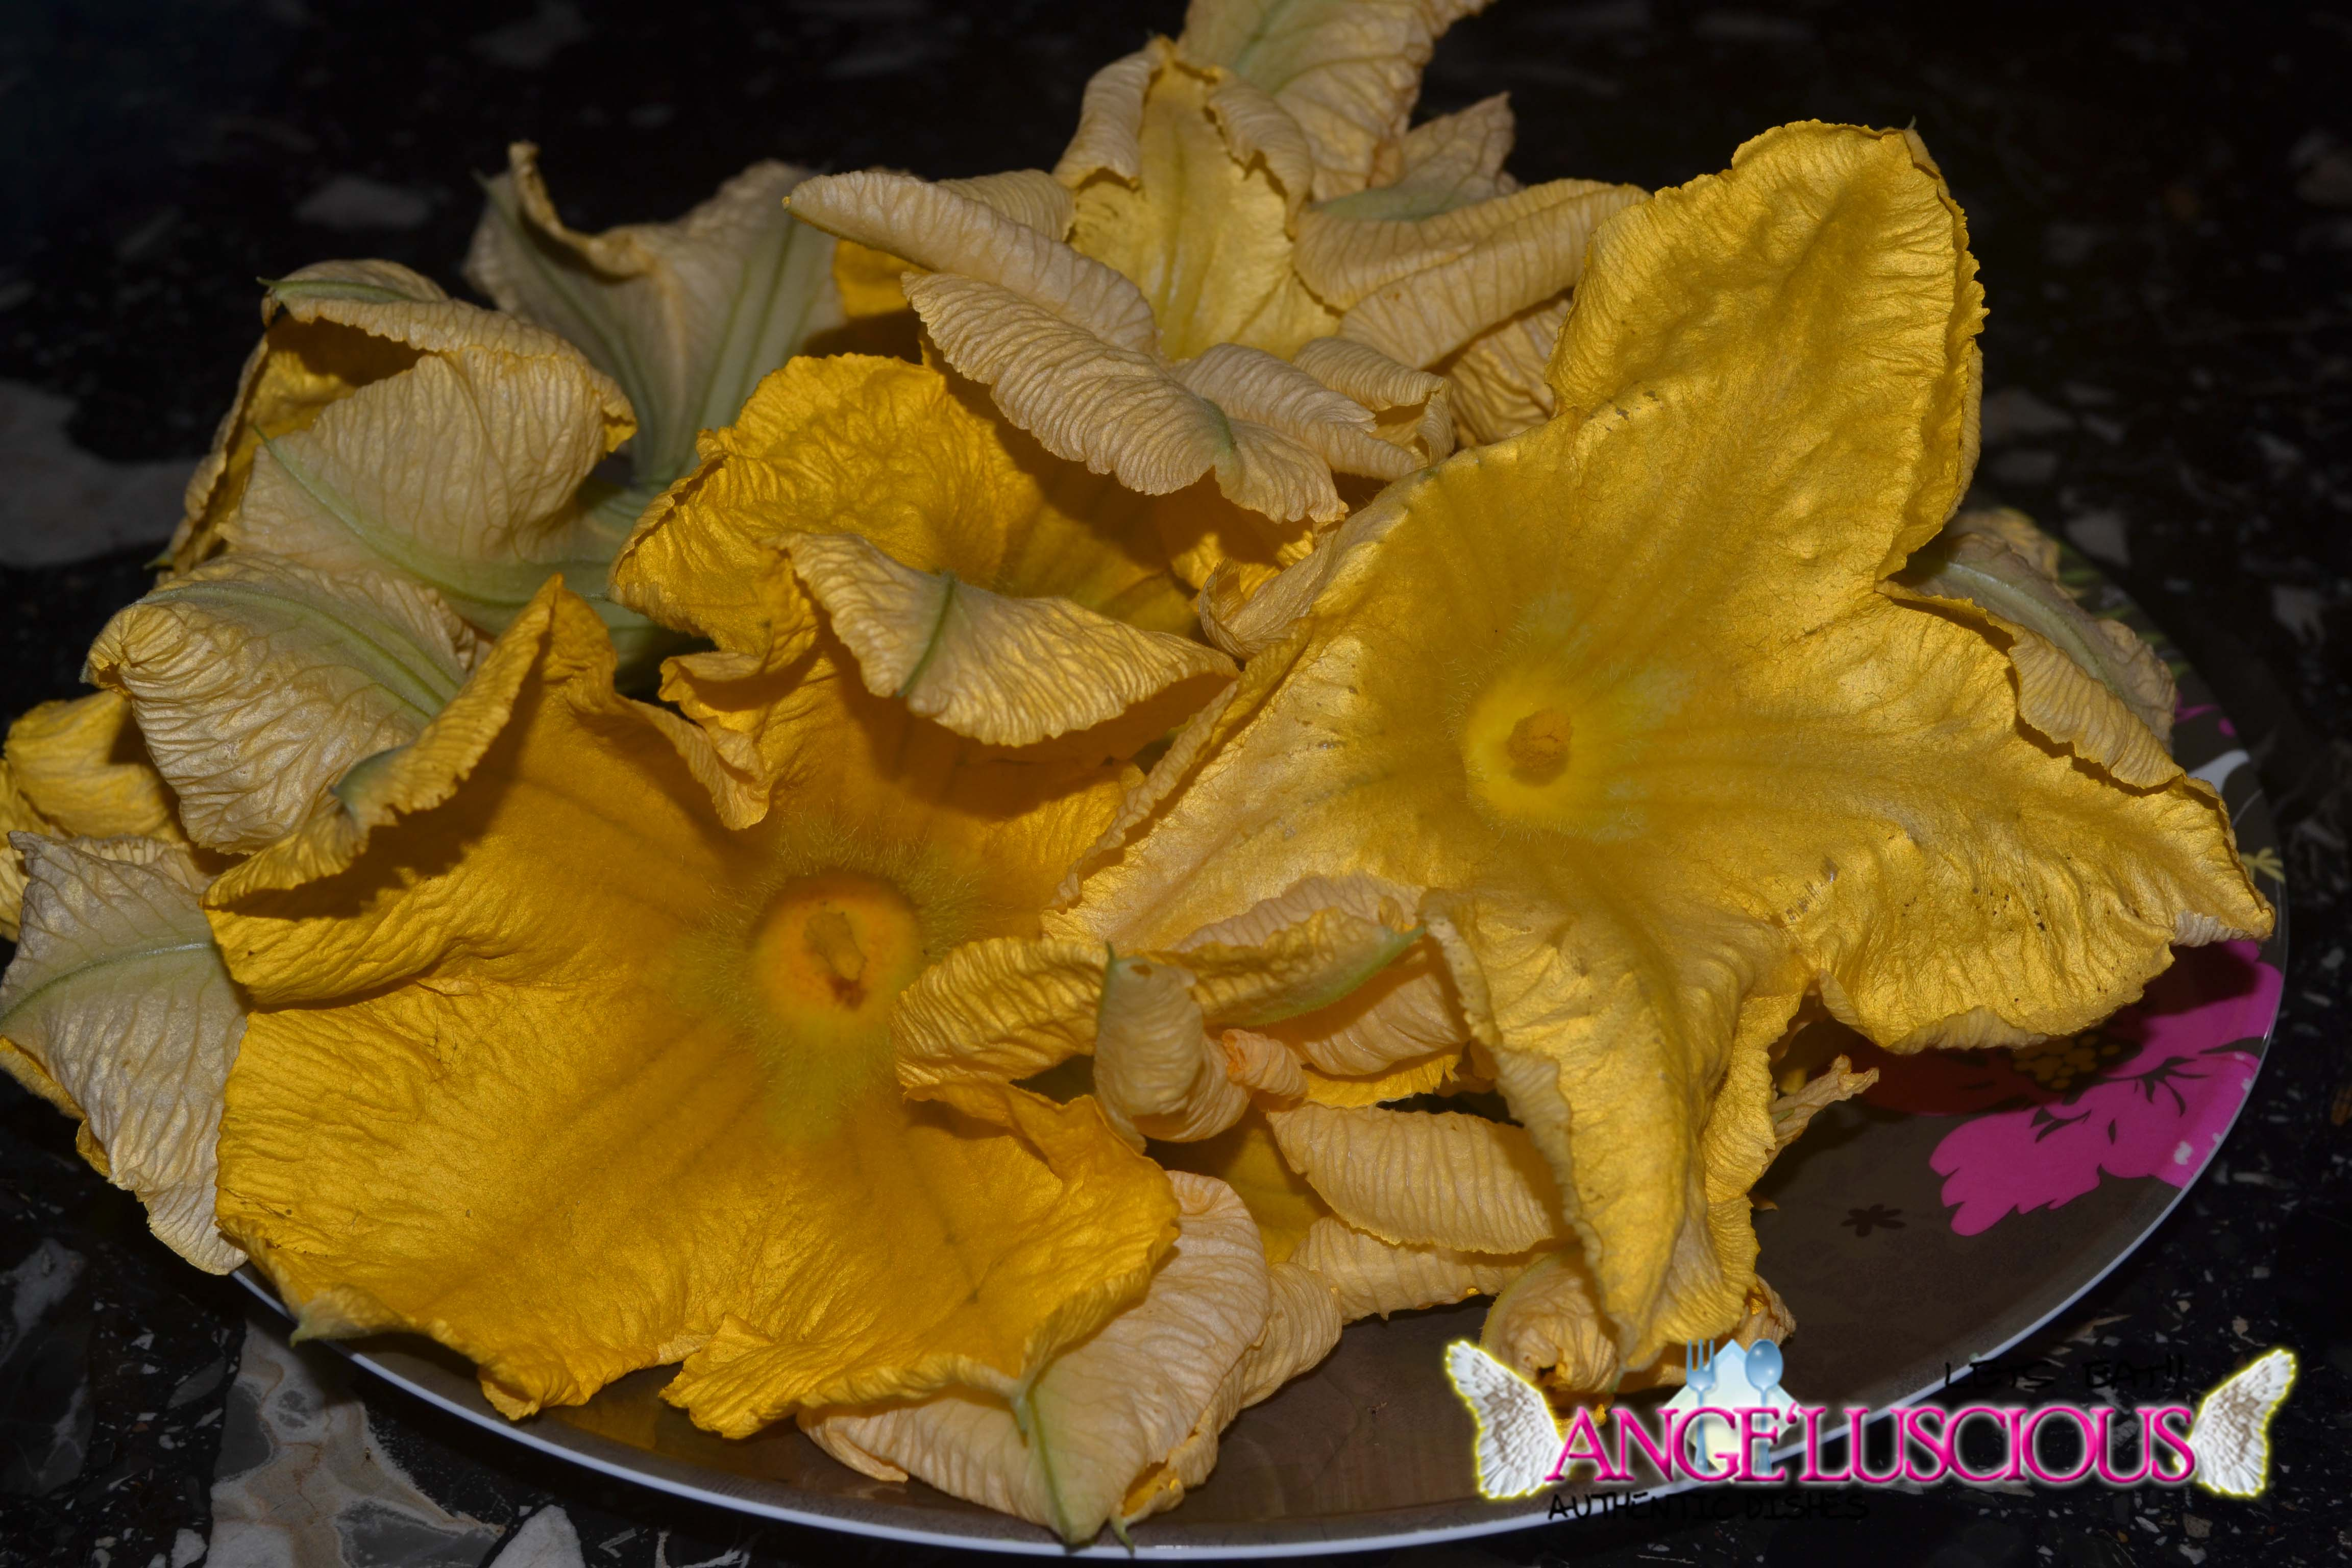 squash blossoms harvested